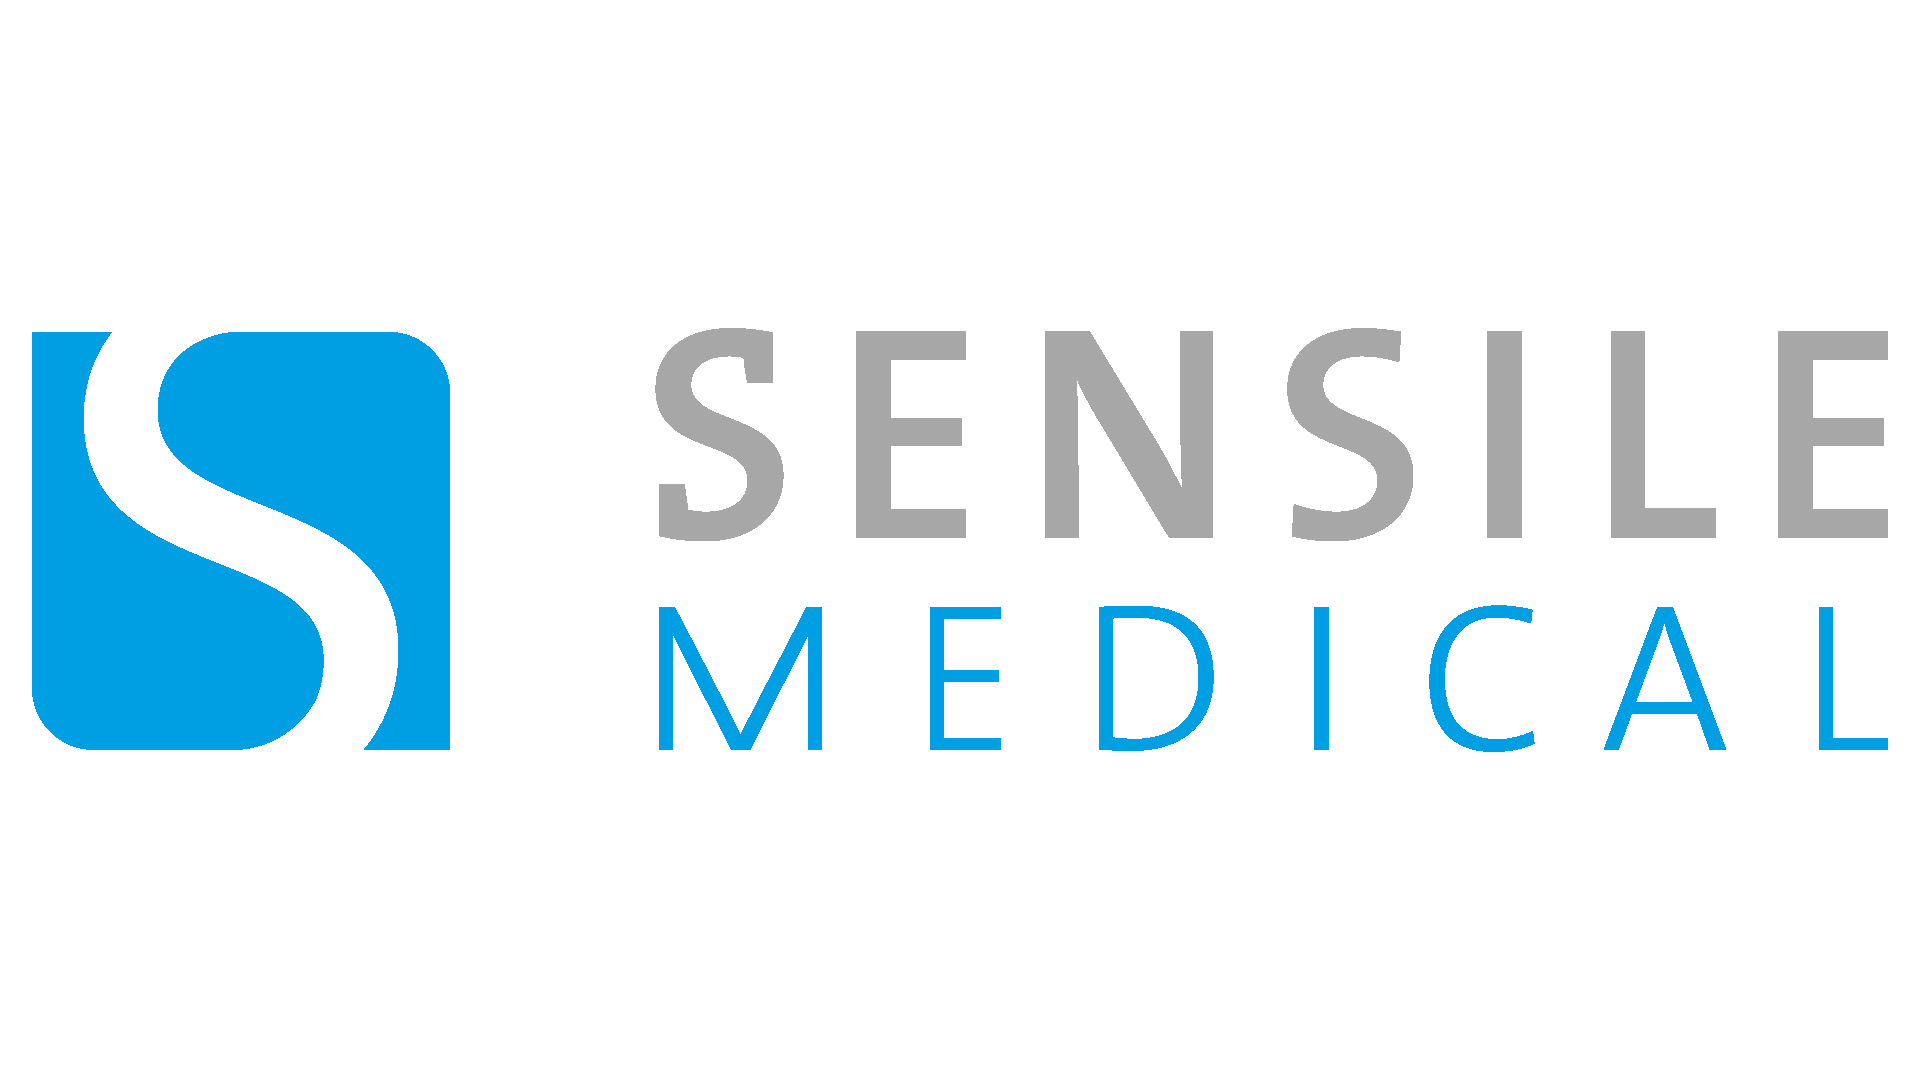 File:Medical Logo.png - Wikimedia Commons